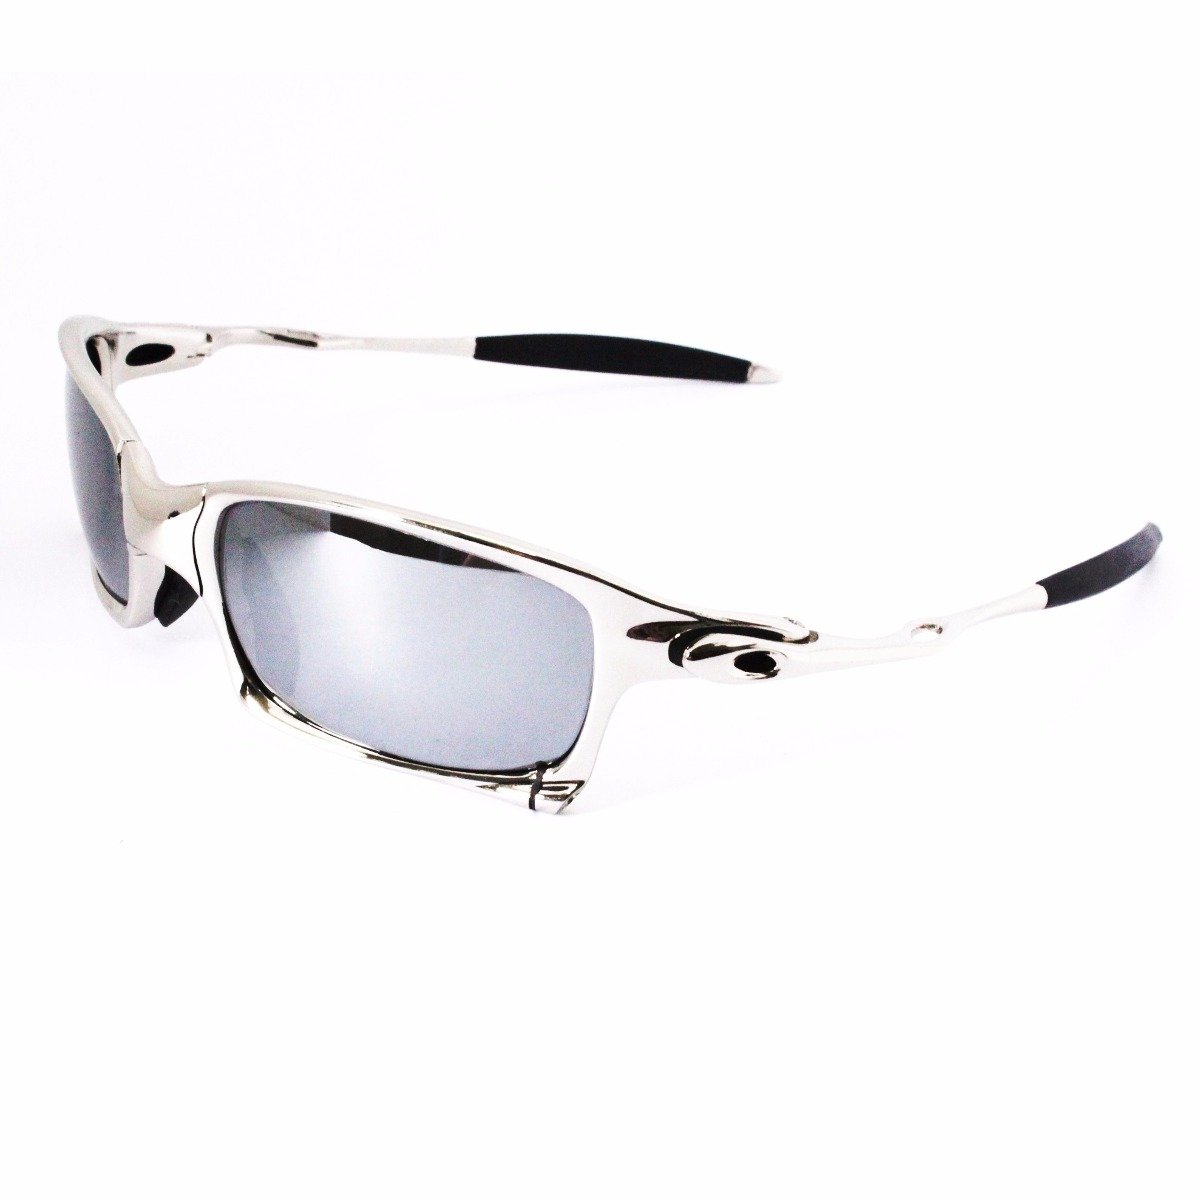 Oakley Squared Sunglasses x-metal - Silver with Black